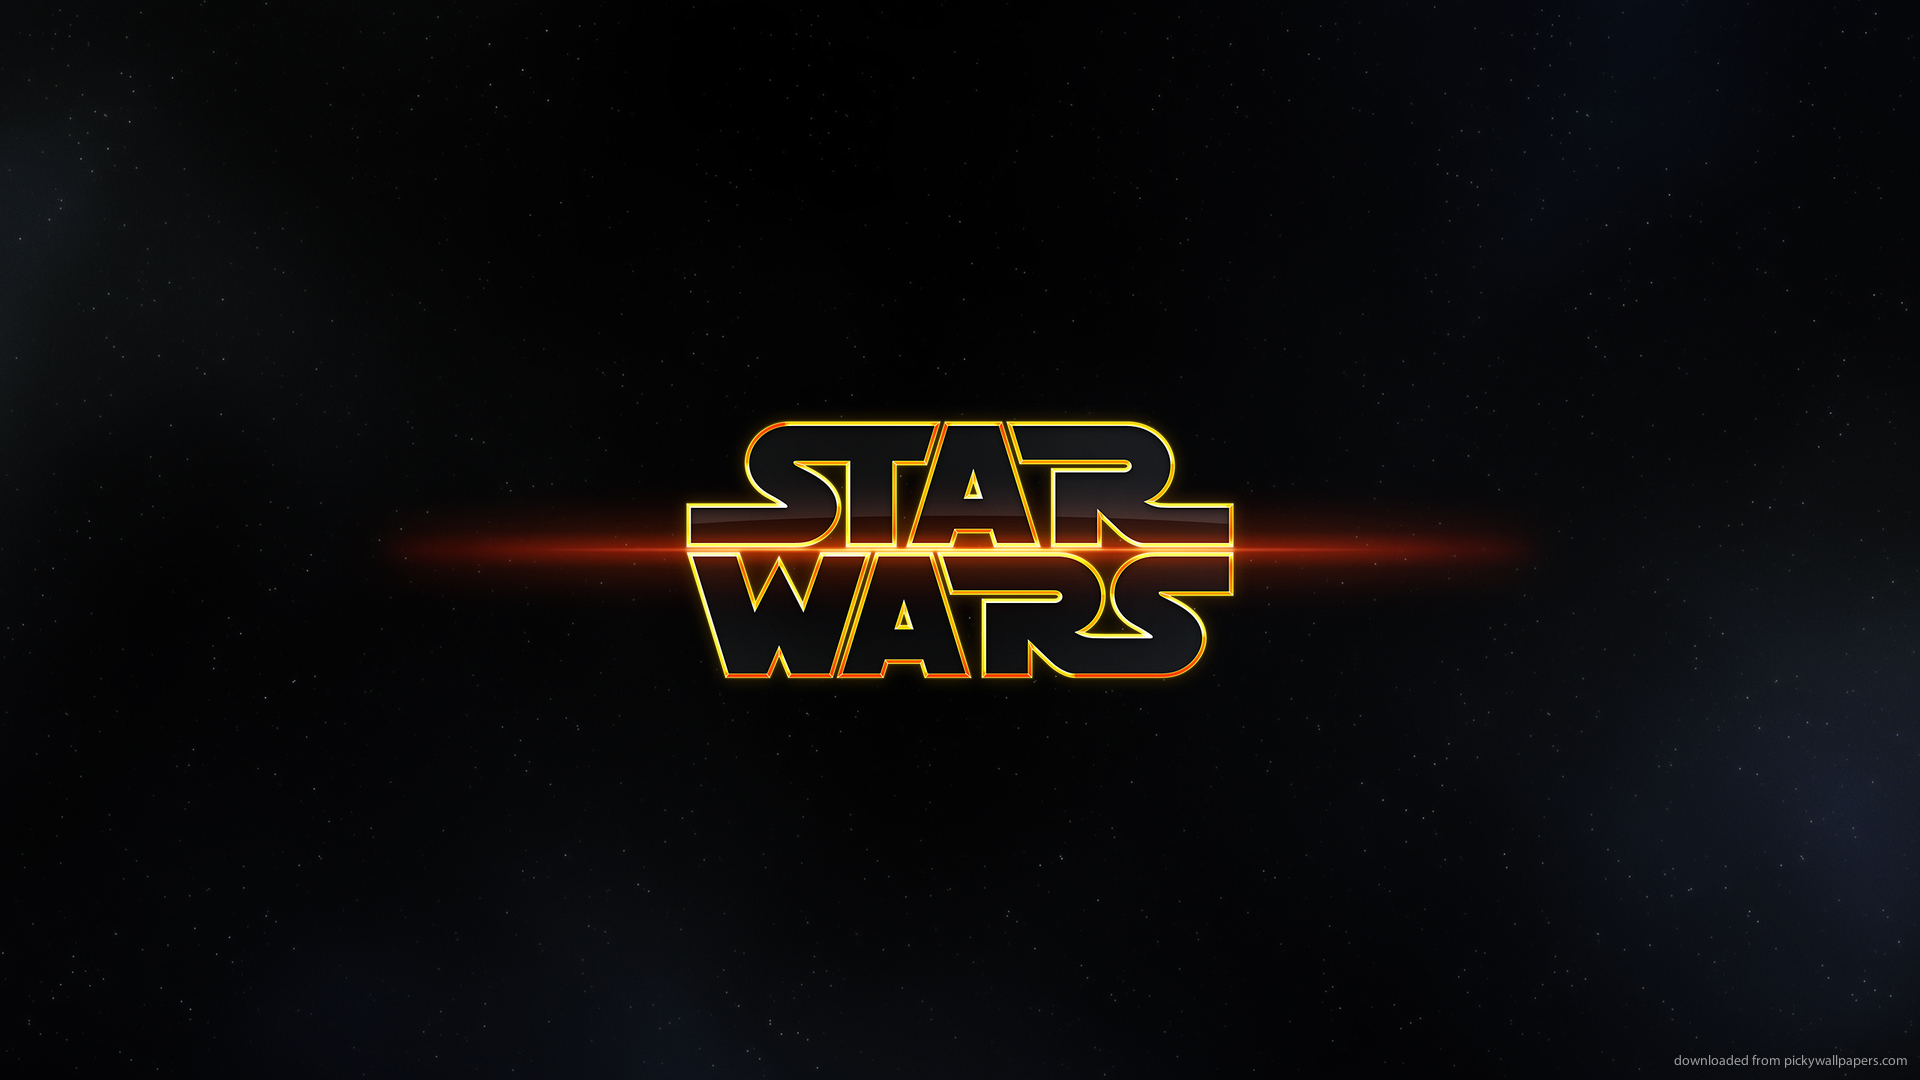 Star Wars Logo Wallpaper Movies Tvshows 1920x1080